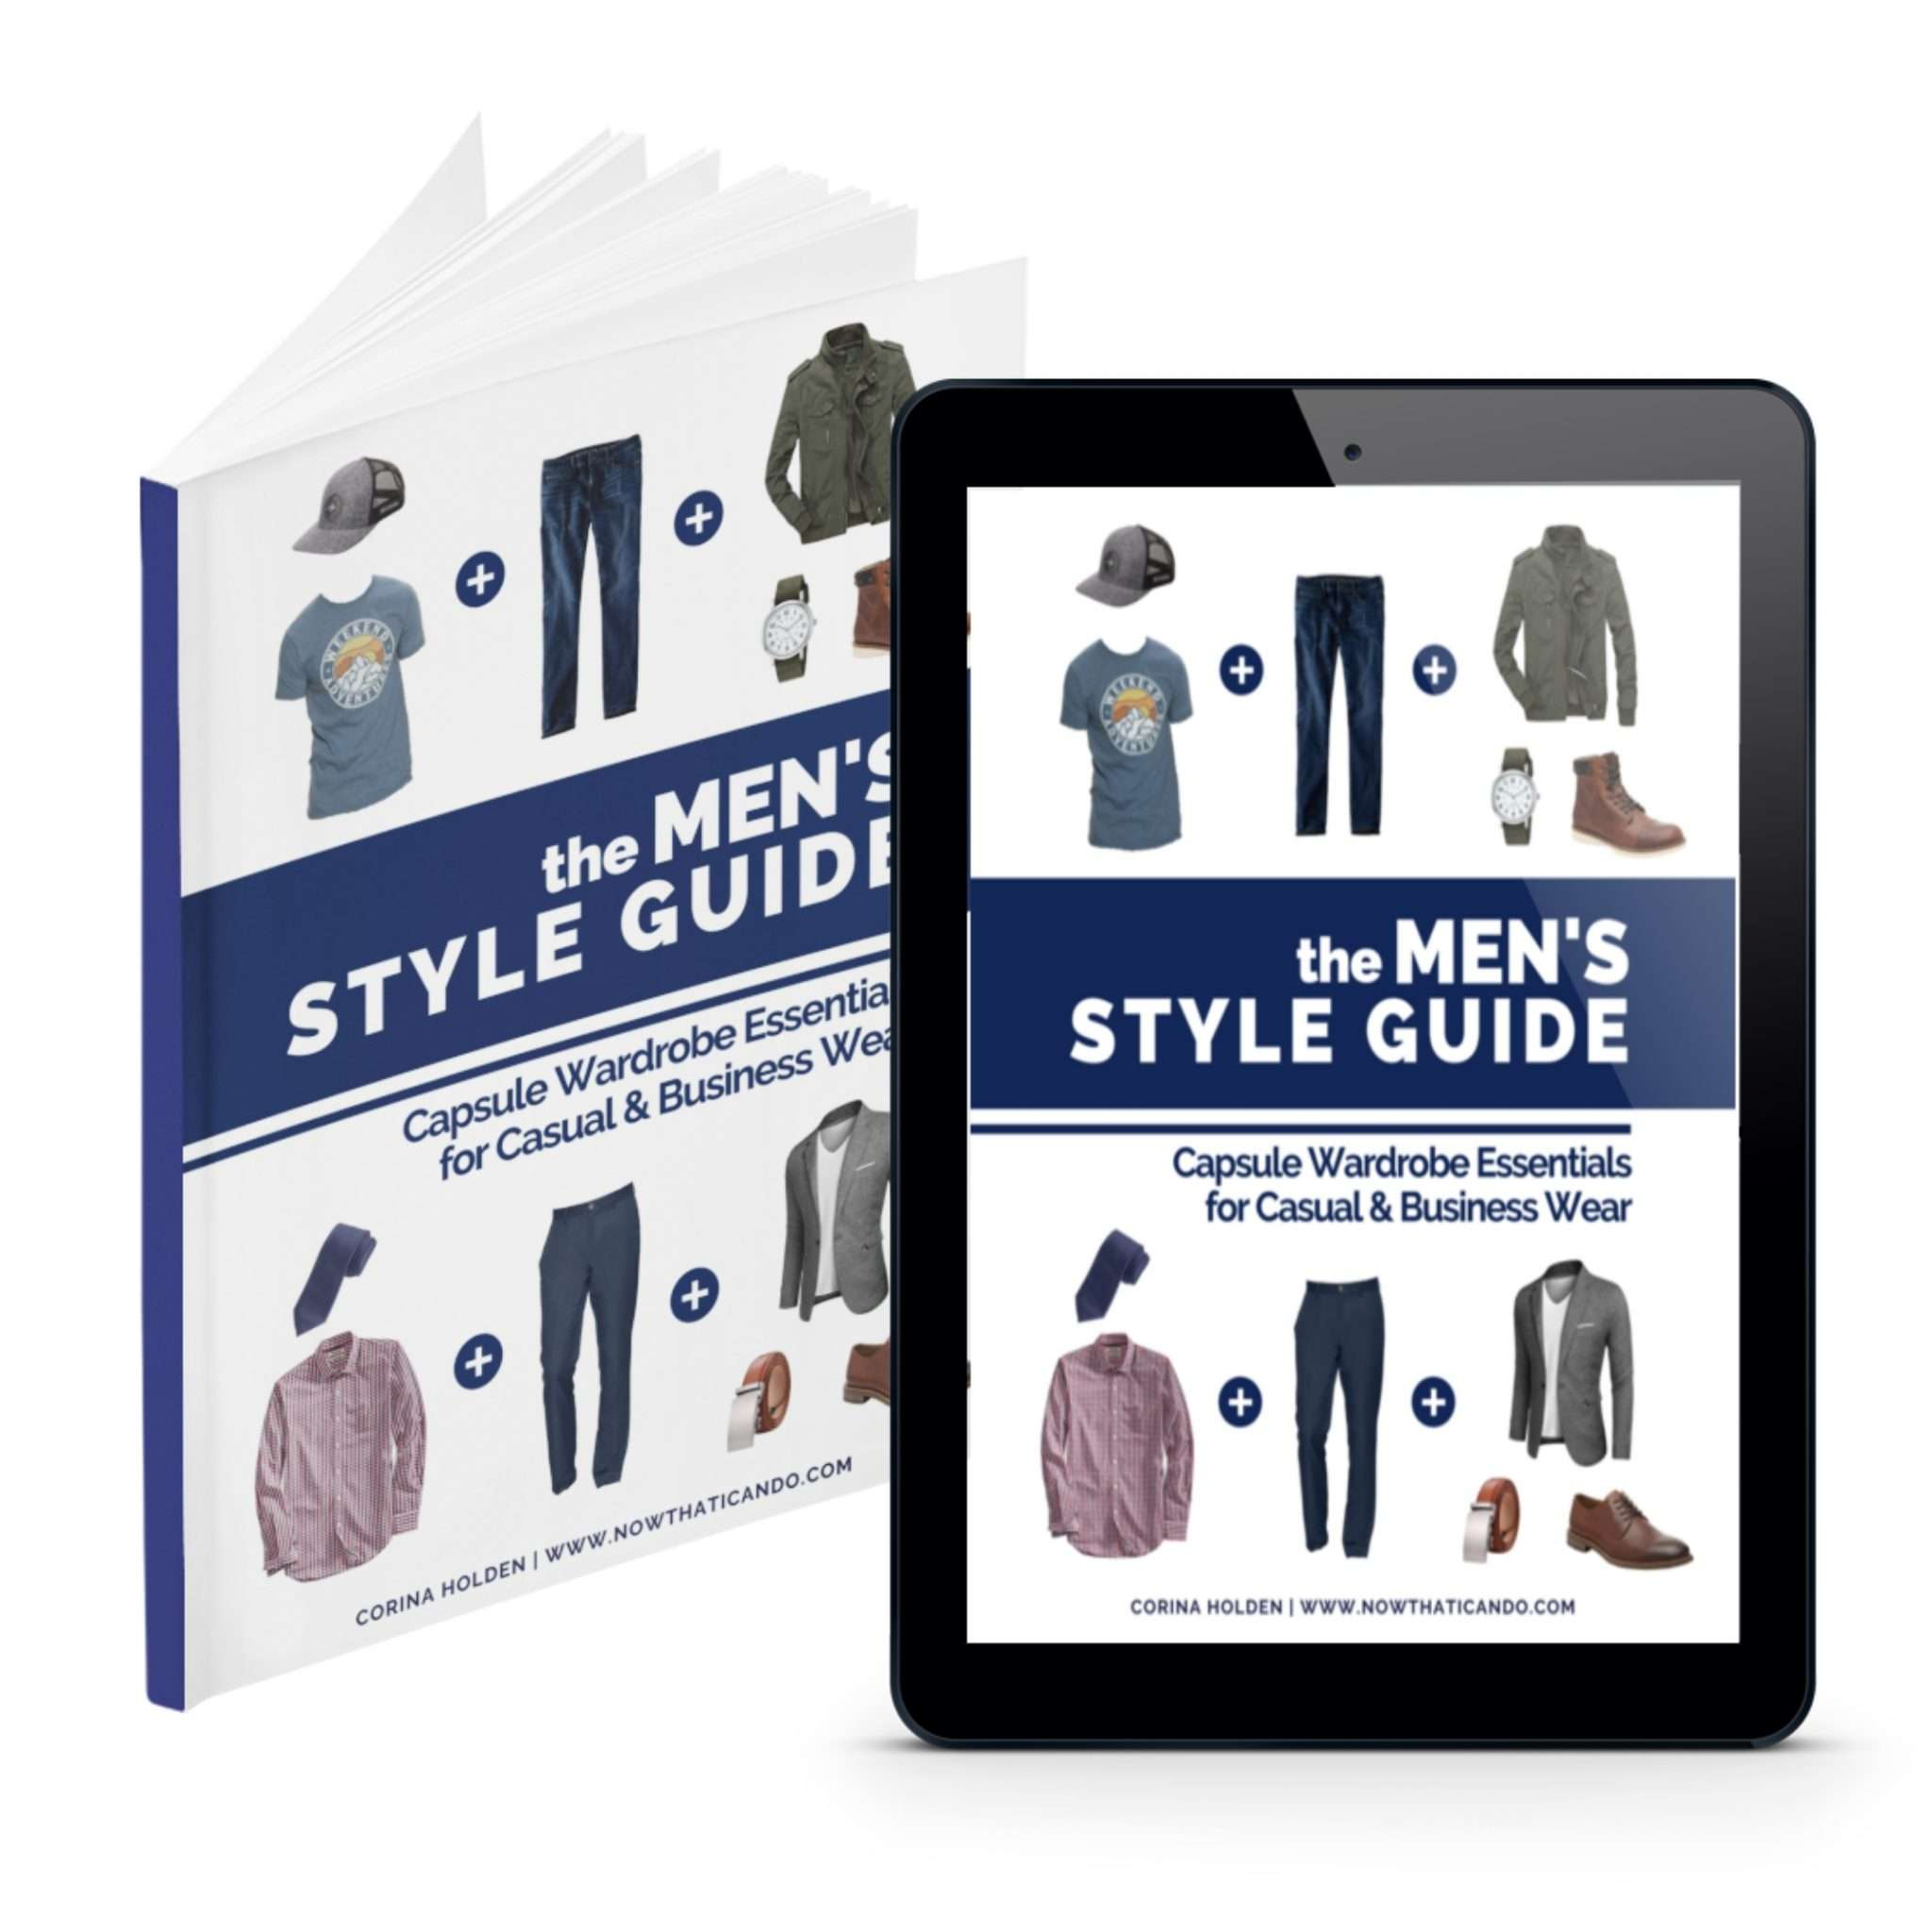 The Men's Style Guide - Capsule Wardrobe for Casual and Business Wear